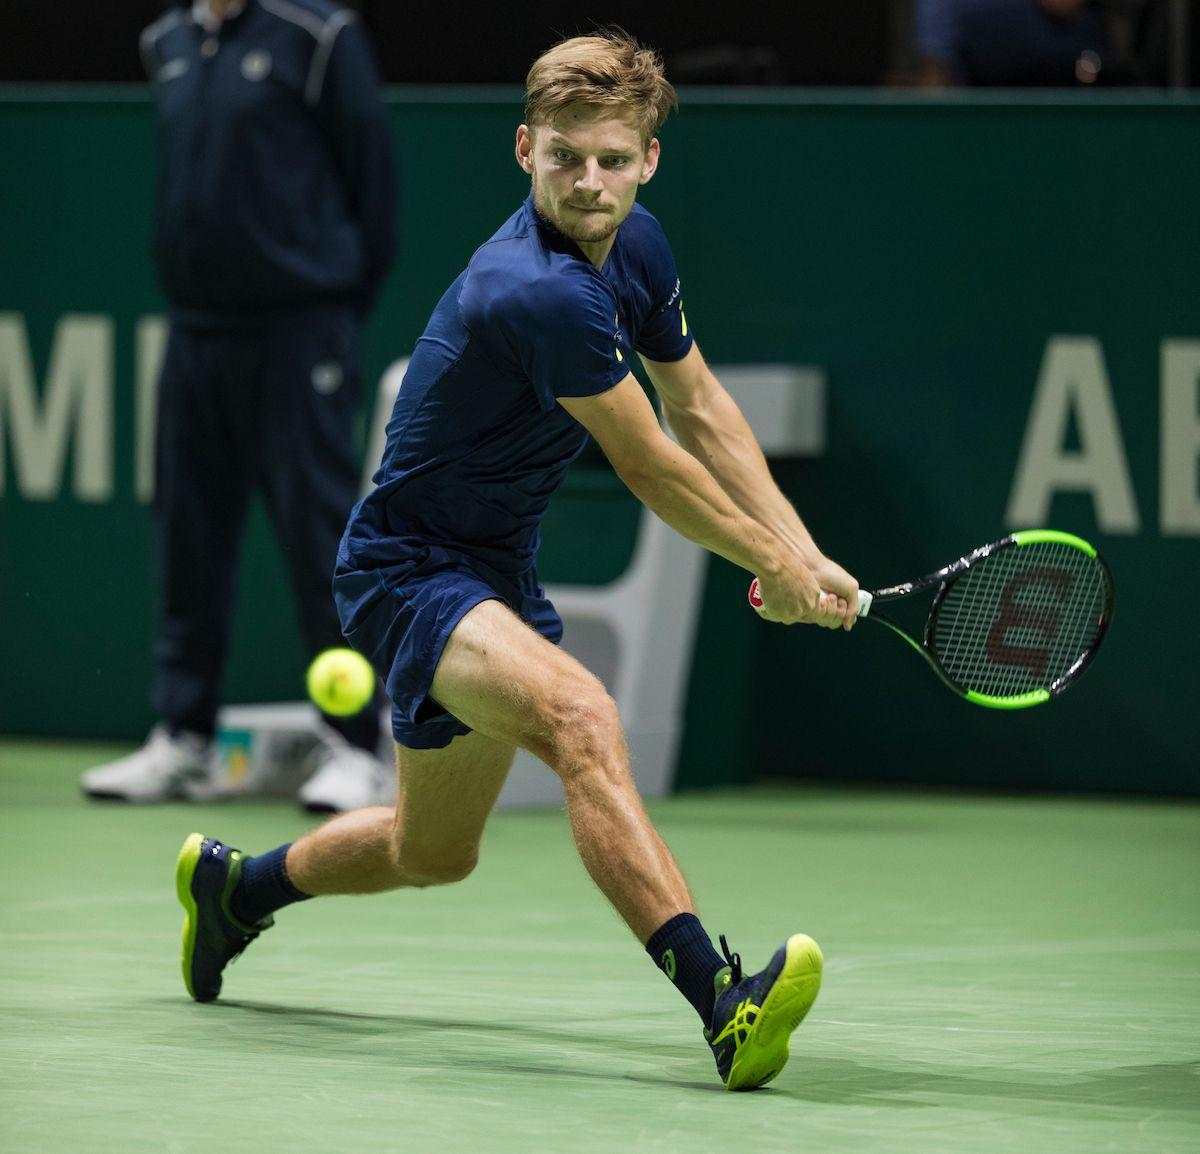 Goffin vierde top-10 speler in het 45e ABN AMRO World Tennis Tournament